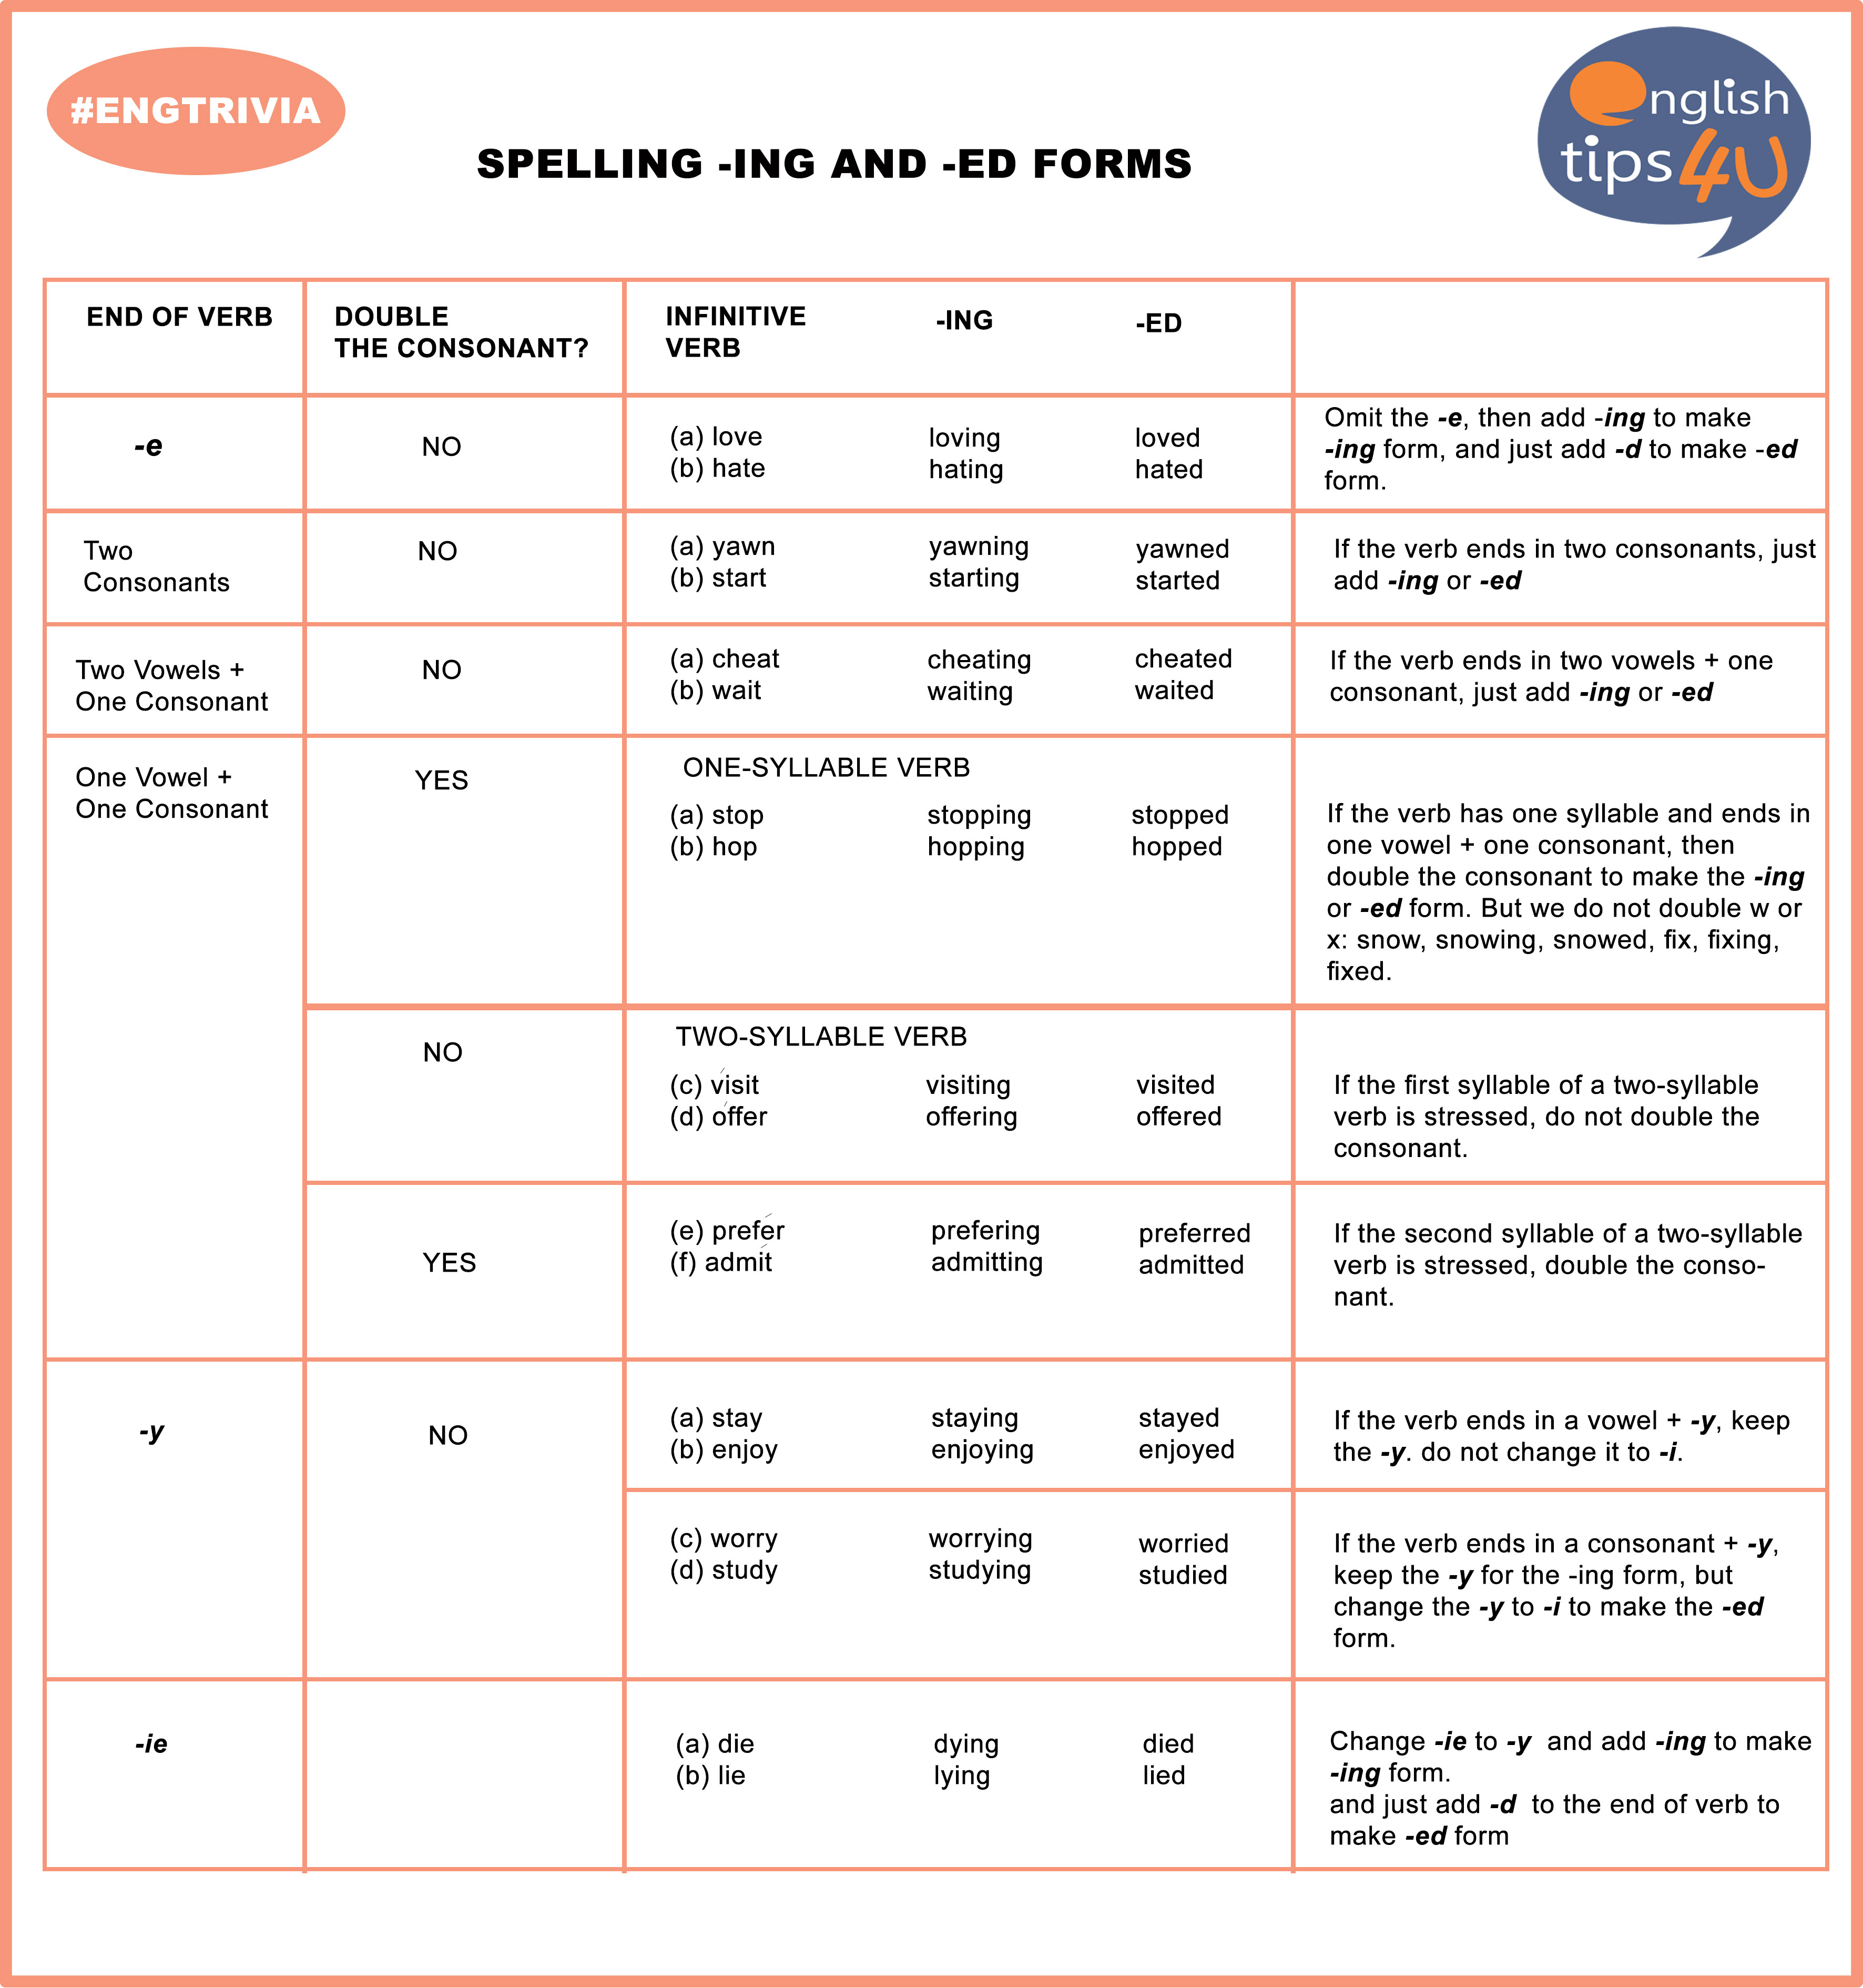 Engtrivia Spelling Ing And Ed Forms